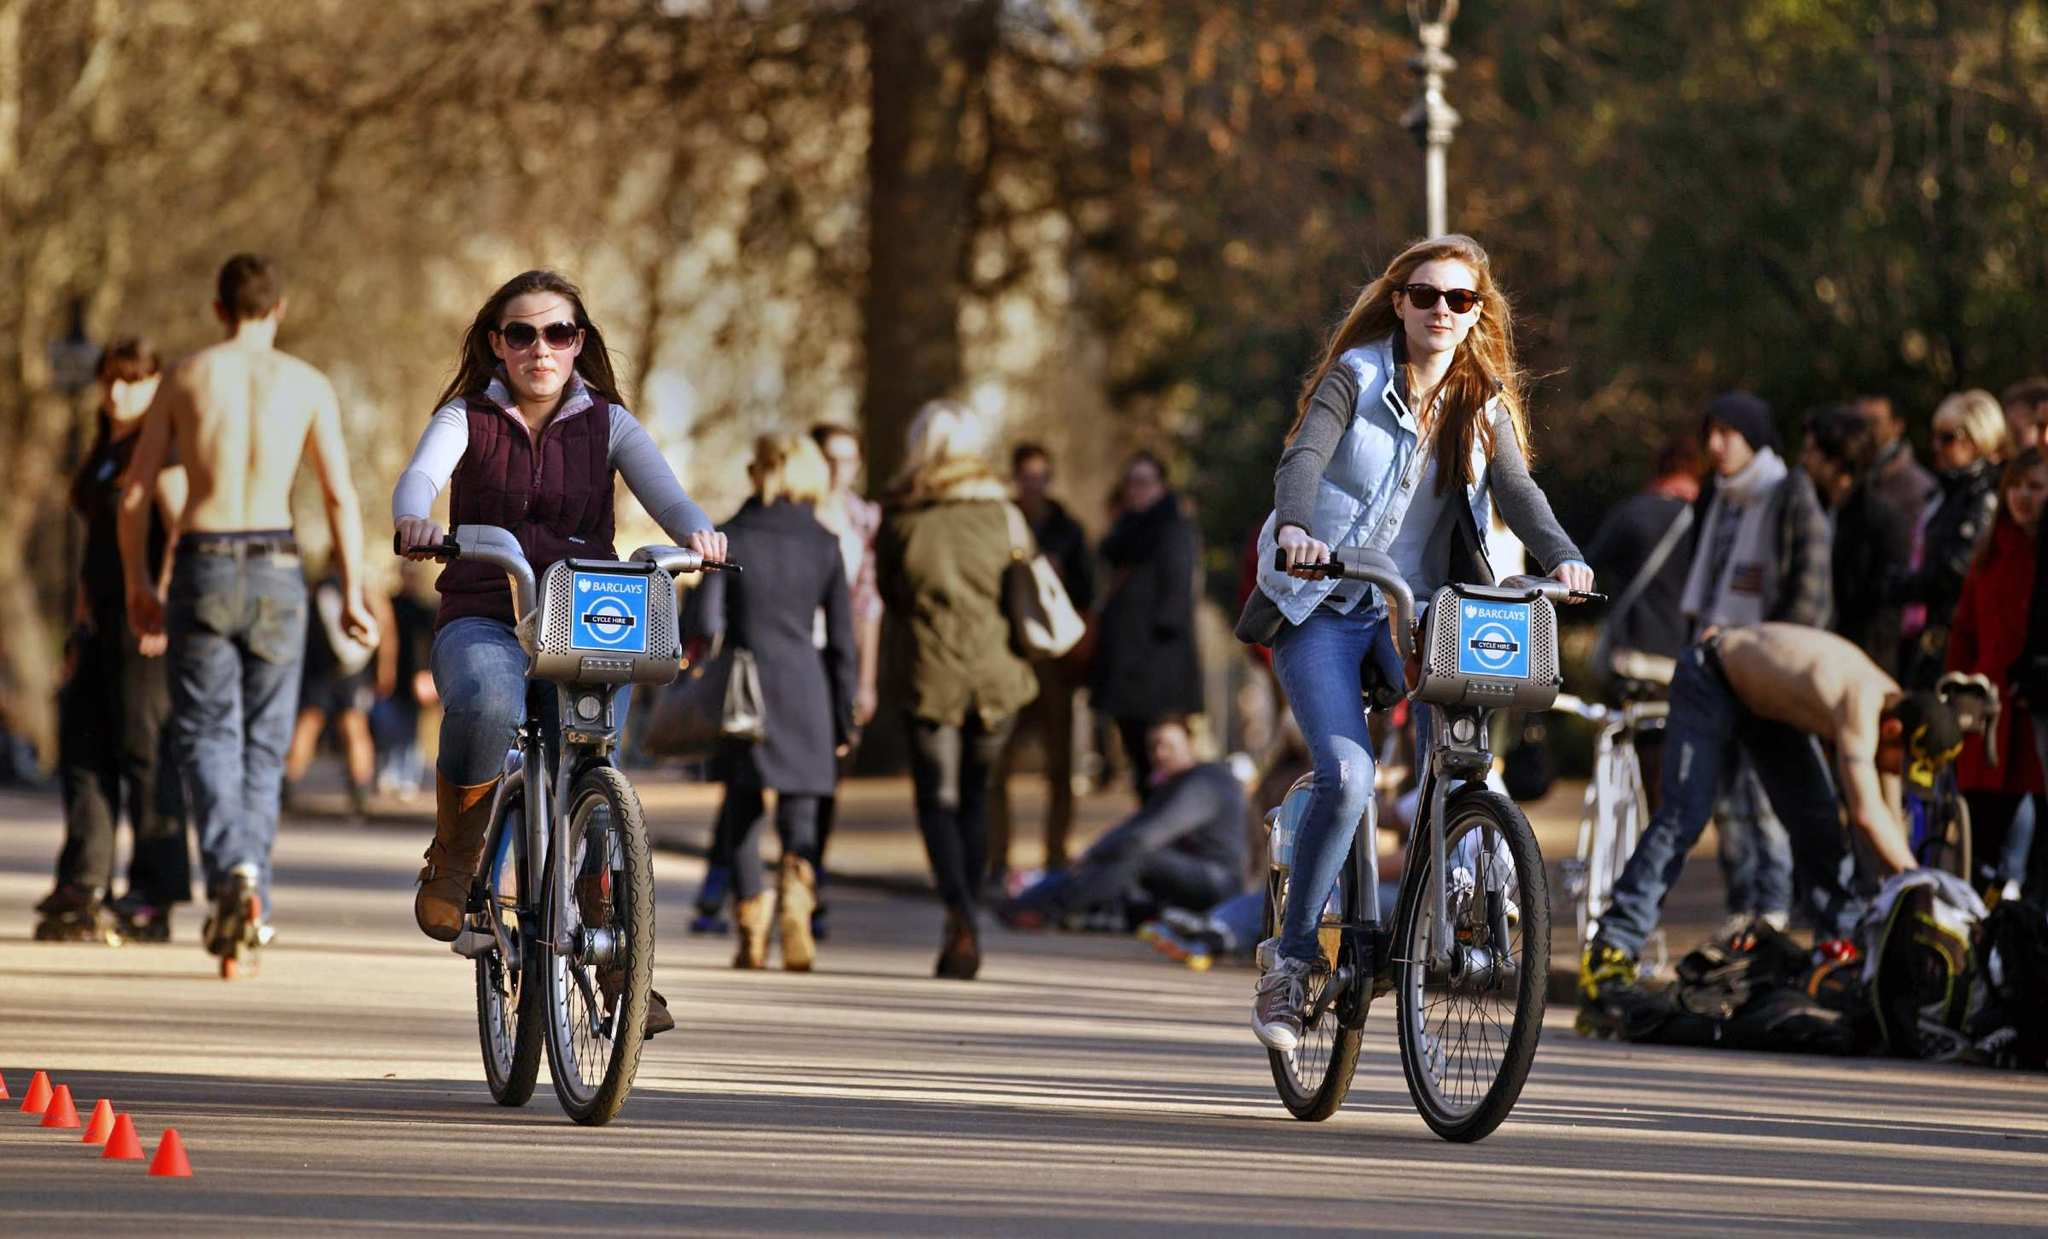 Free and inexpensive things to see and do in London - Rent a bike